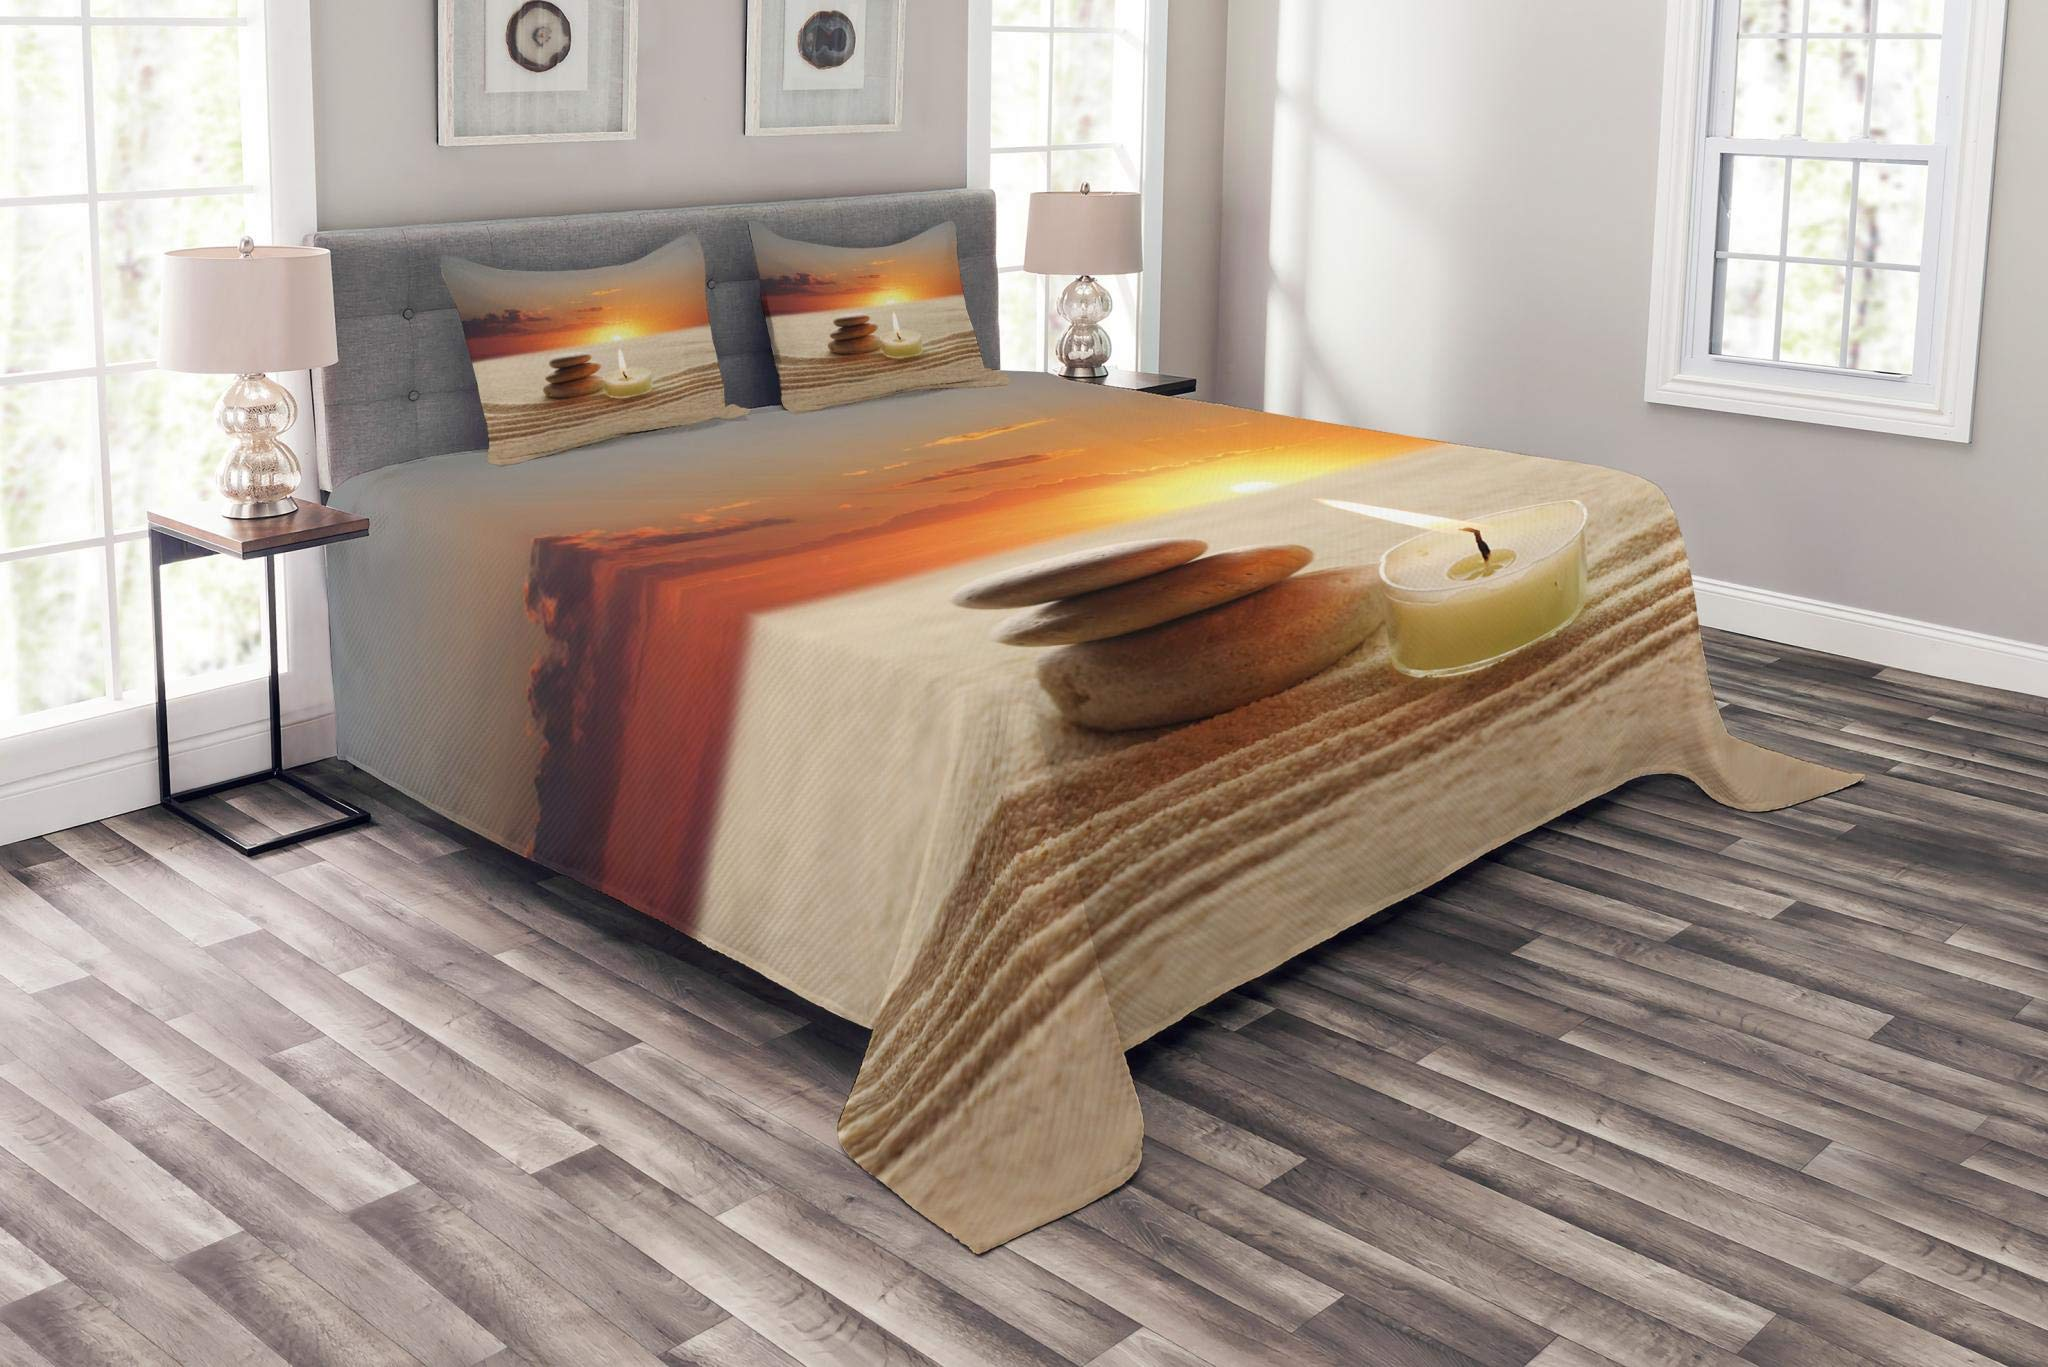 Lunarable Spa Bedspread Set Queen Size, Little Candle with Three Stones Middle of Sand with Sunset Serene Landscape, Decorative Quilted 3 Piece Coverlet Set with 2 Pillow Shams, White Brown and Orange